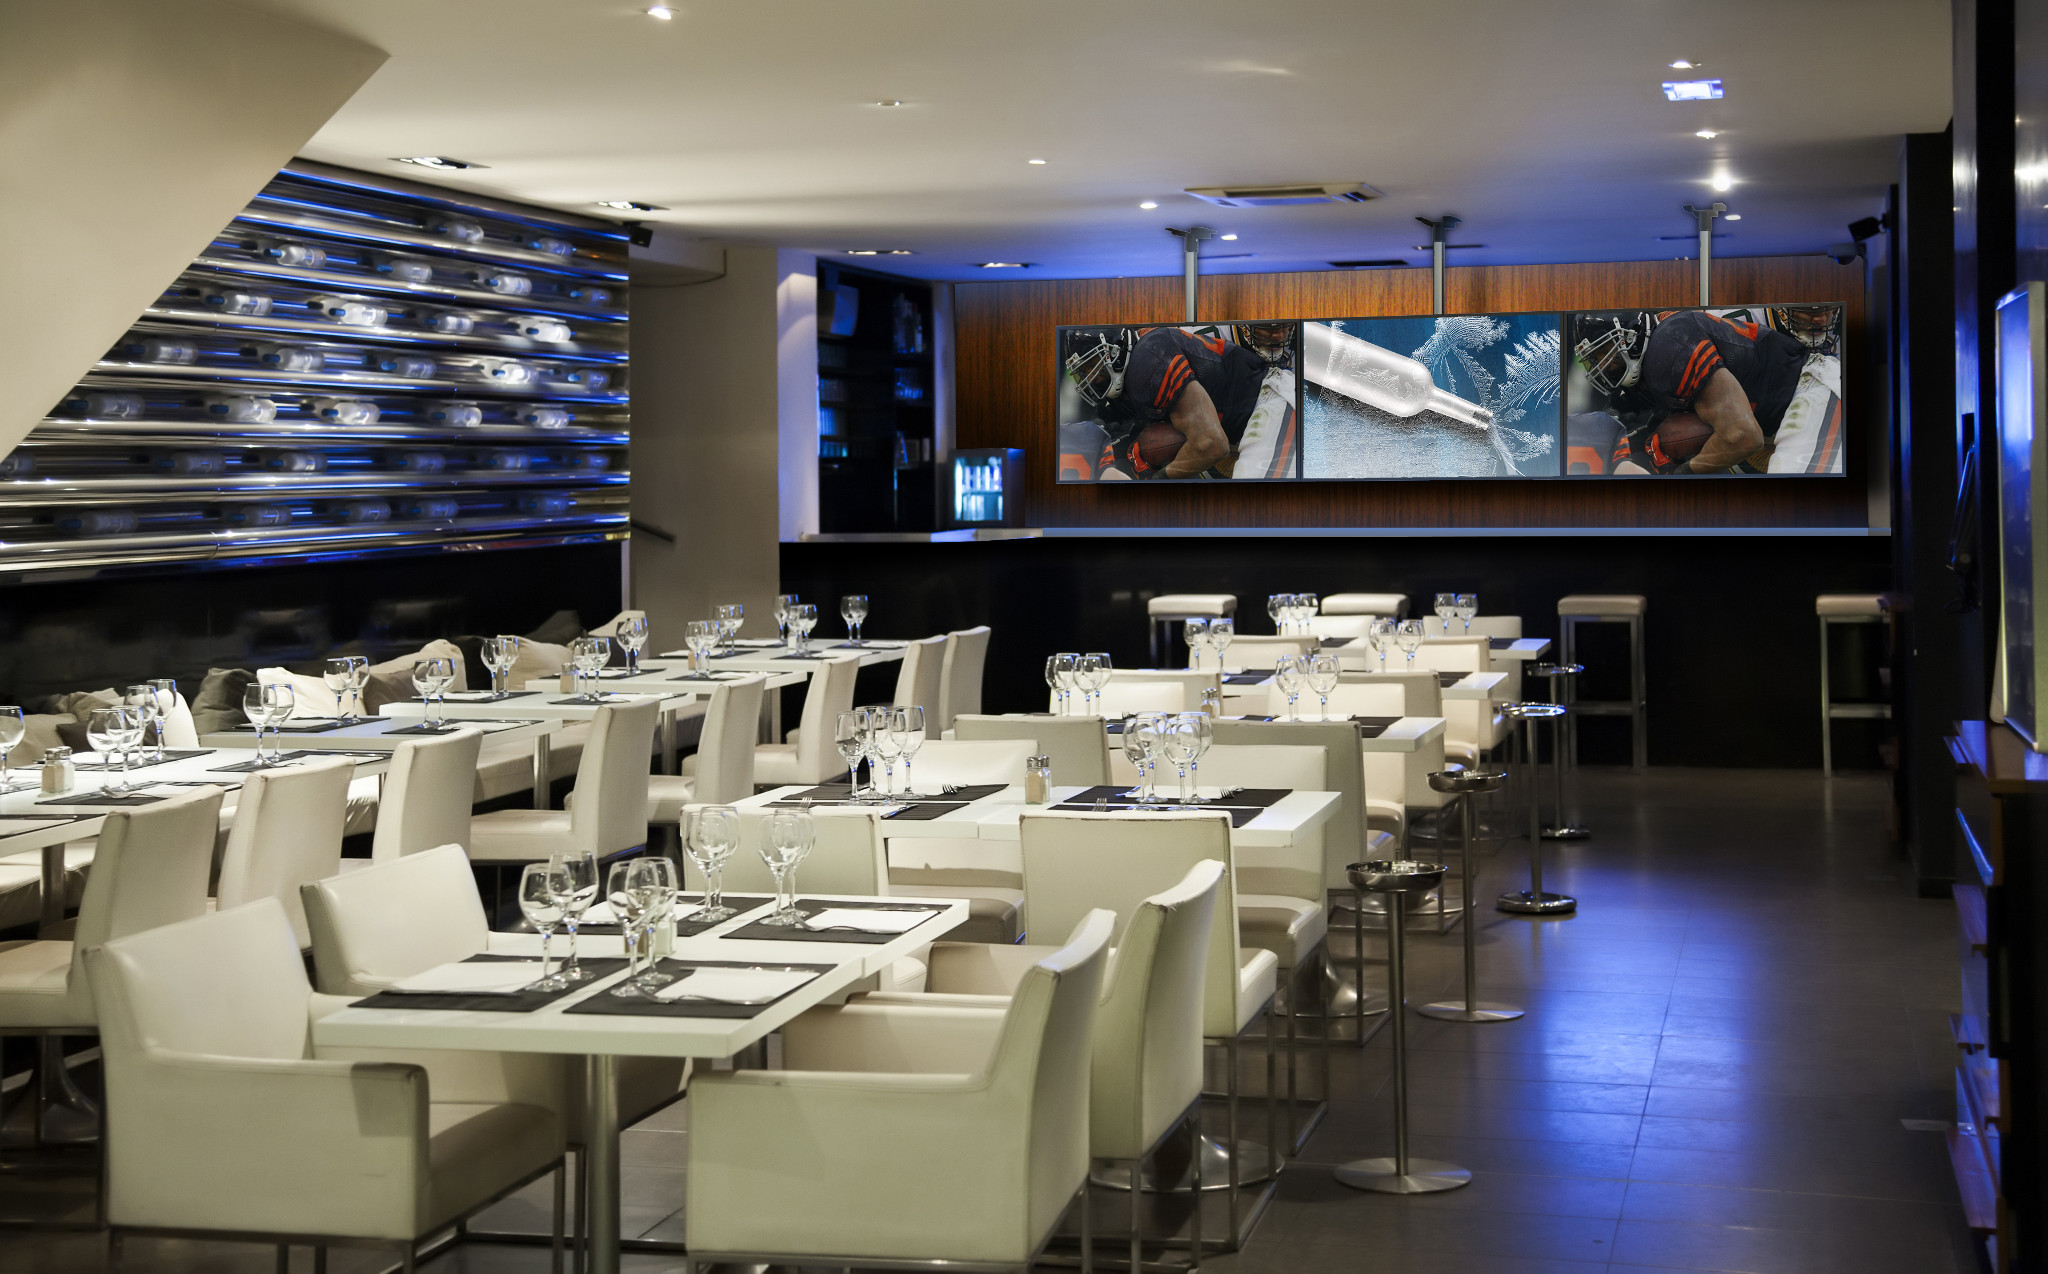 Marketing and digital signage for the modern restaurant modern restaurant management the - Moderne cusine ...